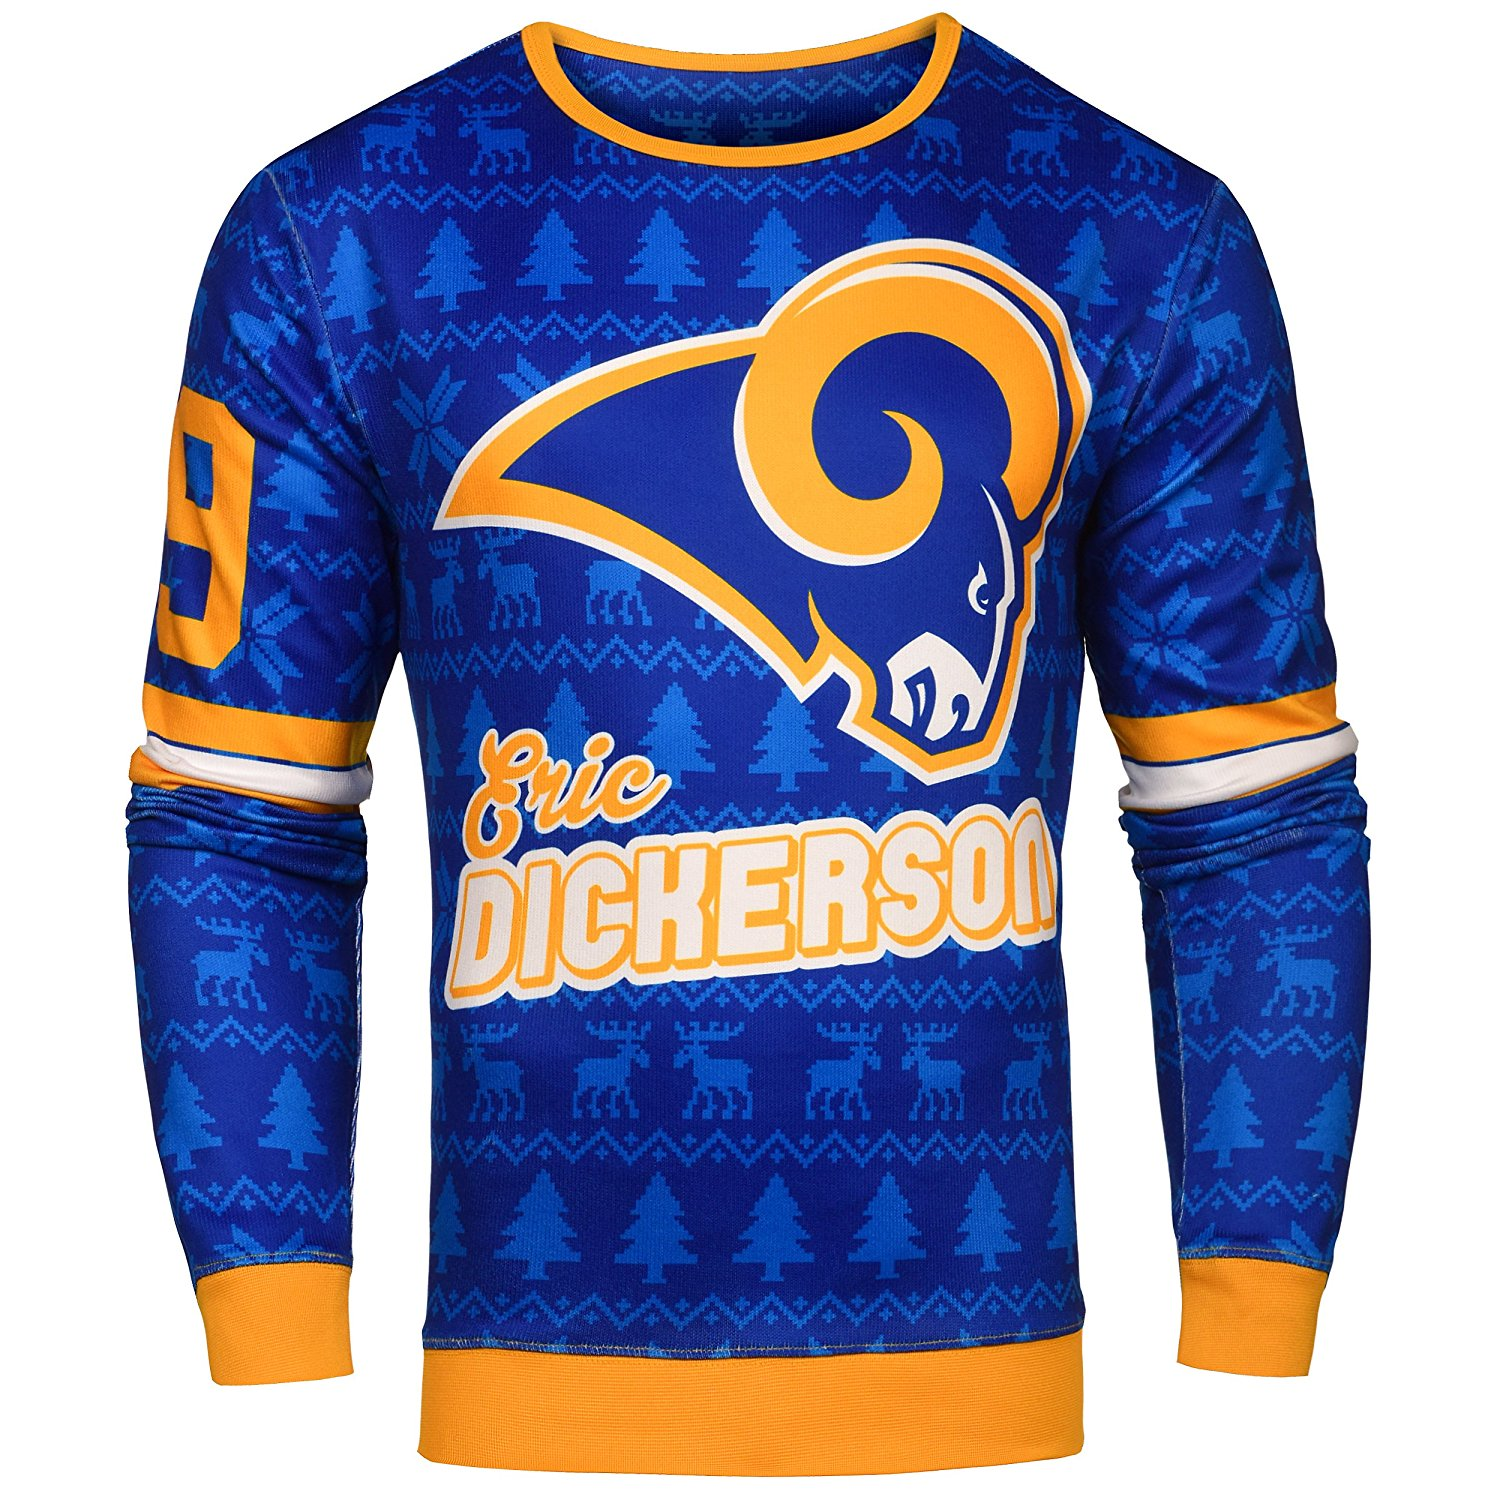 4c2291b1 Details about NFL Men's Los Angeles Rams Eric Dickerson #29 Retired Player  Ugly Sweater